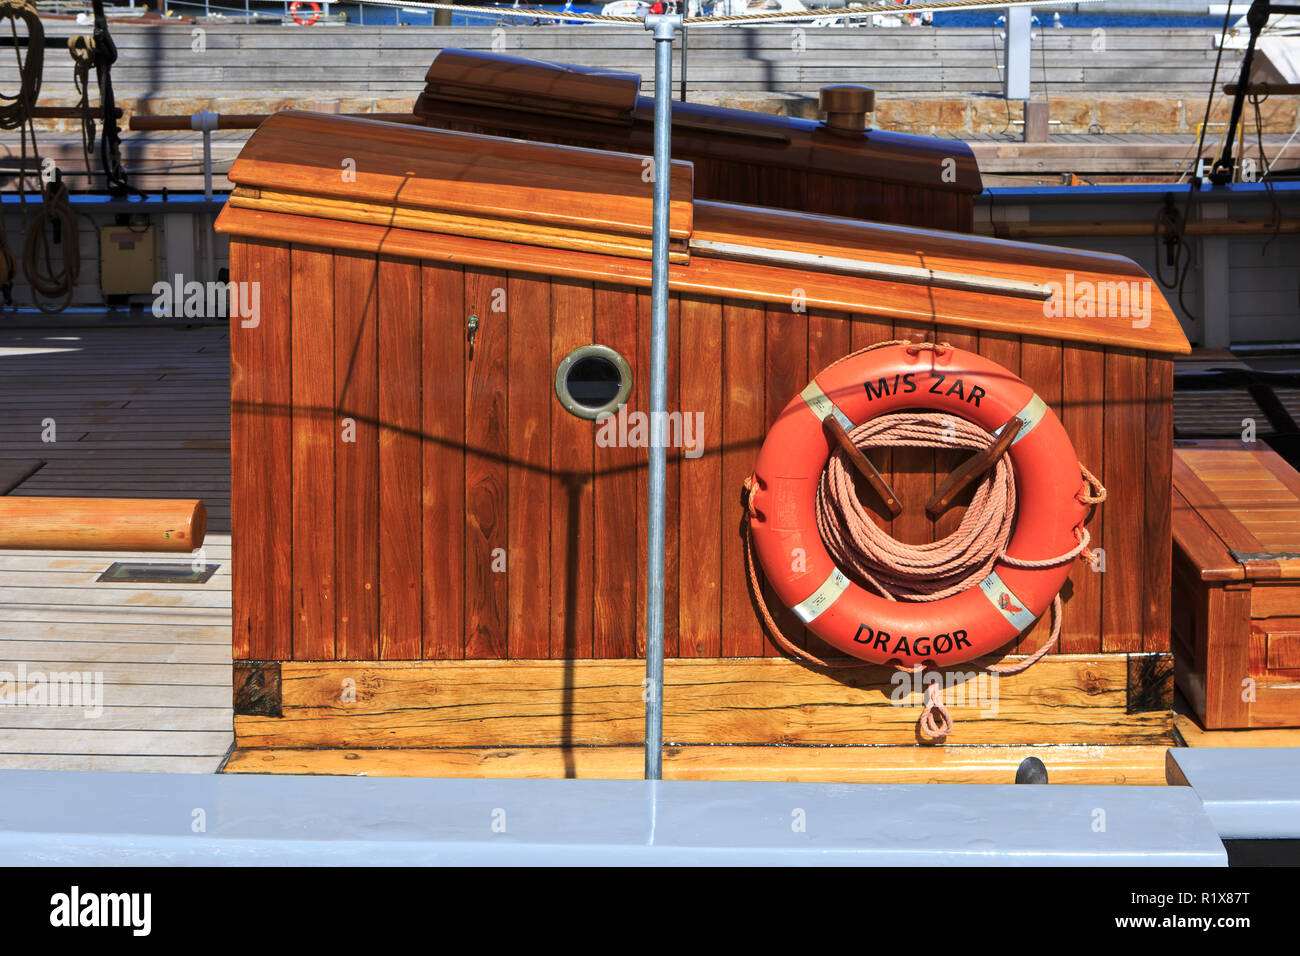 Close-up of the wooden sailing ship M/S Zar from Dragor in Helsingor, Denmark - Stock Image